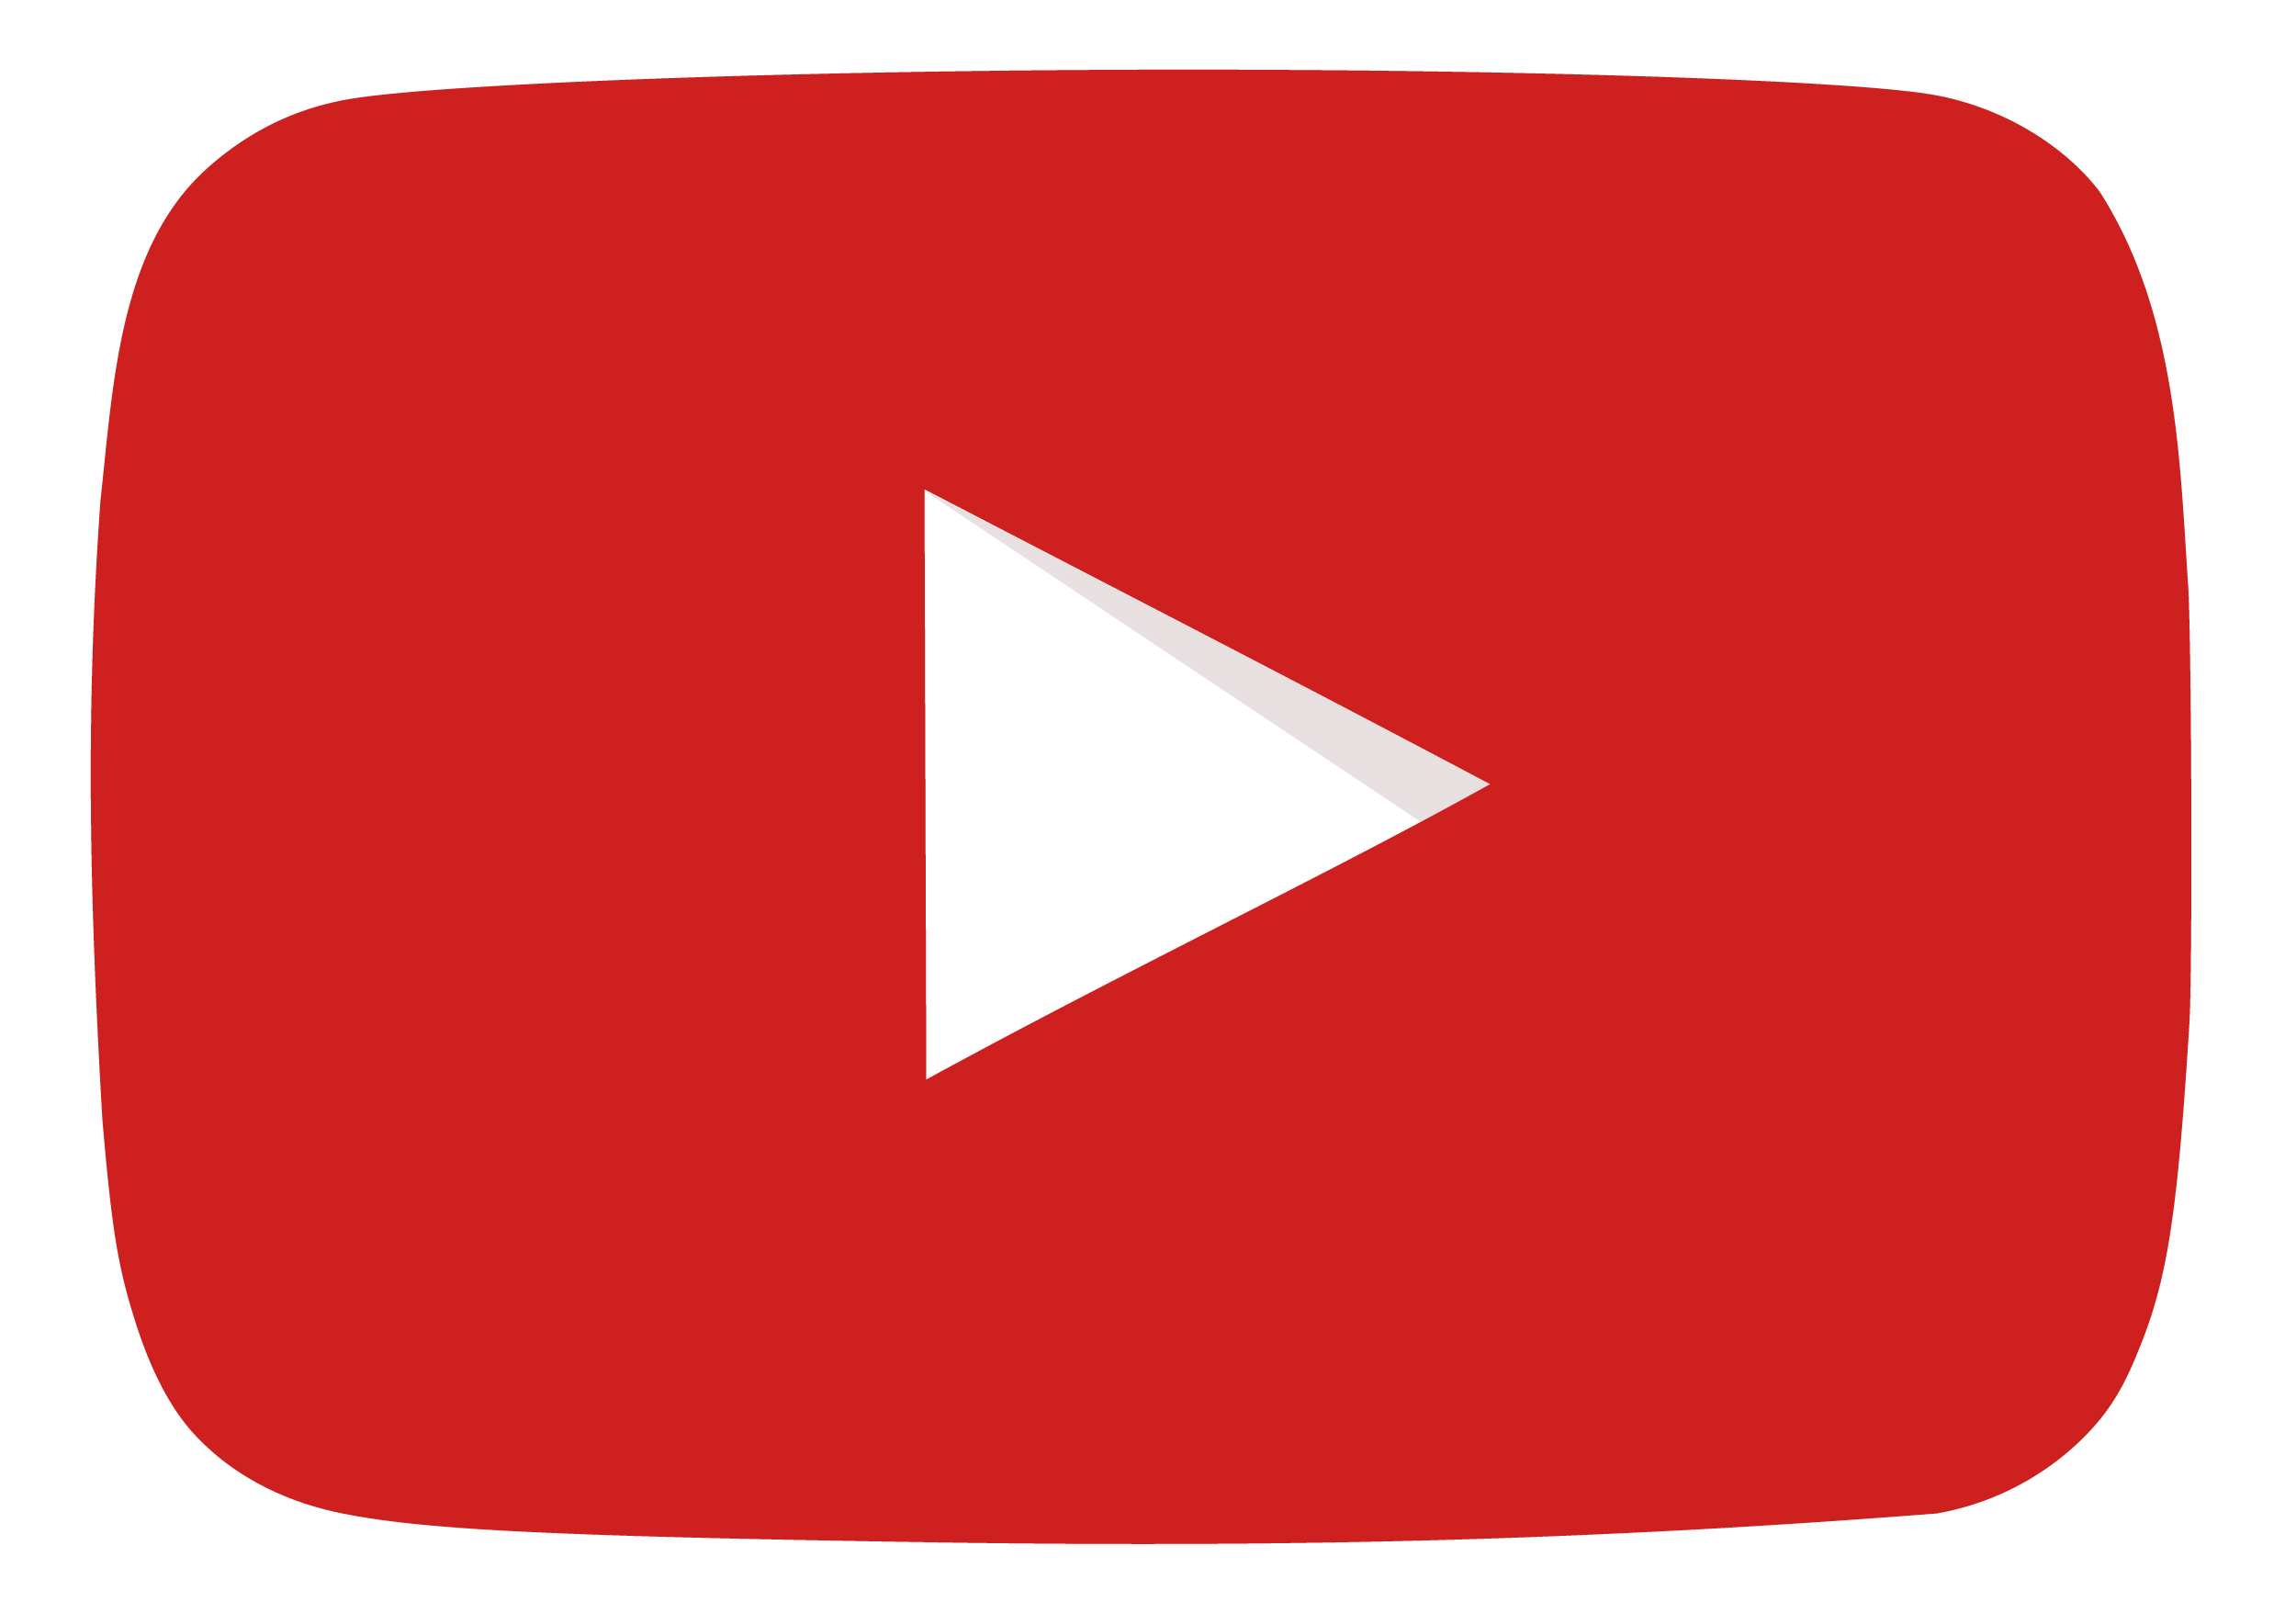 Meaning YouTube logo and symbol.